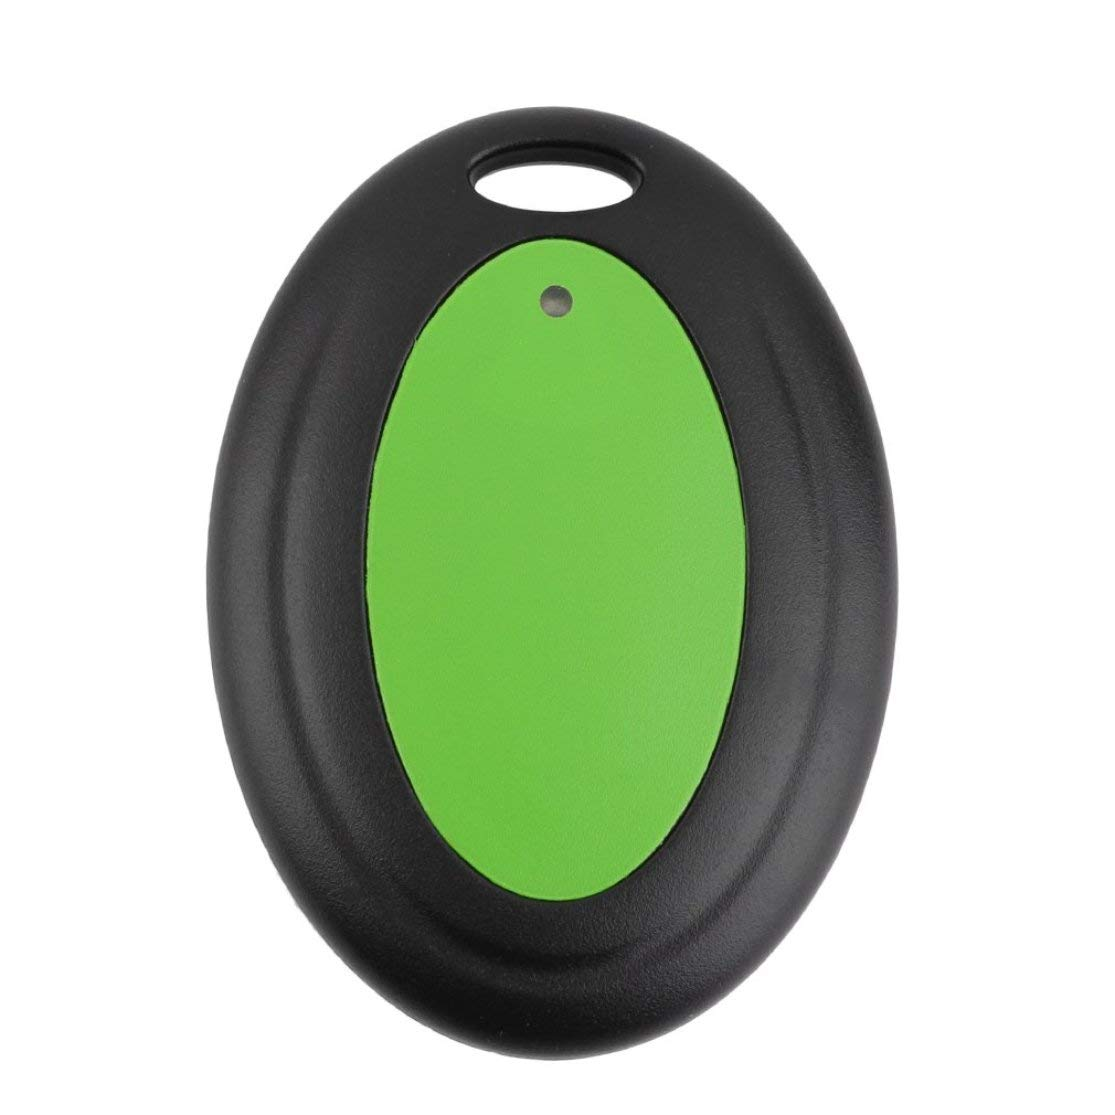 LouiseEvel215 Remote Wireless LED Key Wallet Finder Receiver Lost Thing Alarm Locator Wholesale Tech durable portable